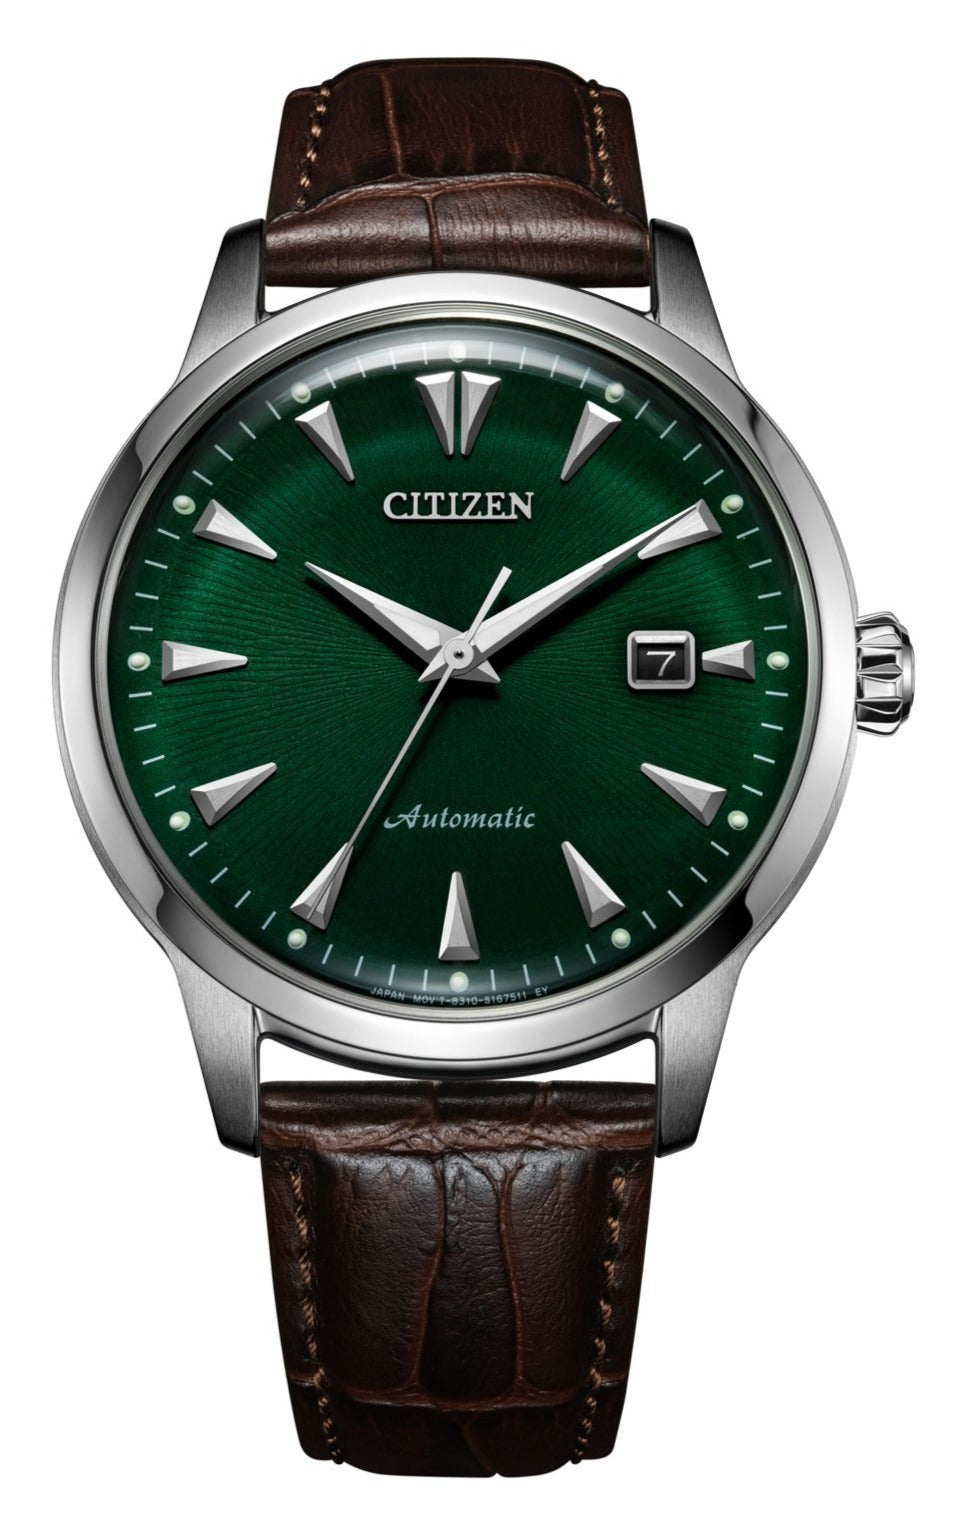 Citizen Automatic NK0001-25X Citizen Kuroshio '64 Asia Exclusive Models www.watchoutz.com